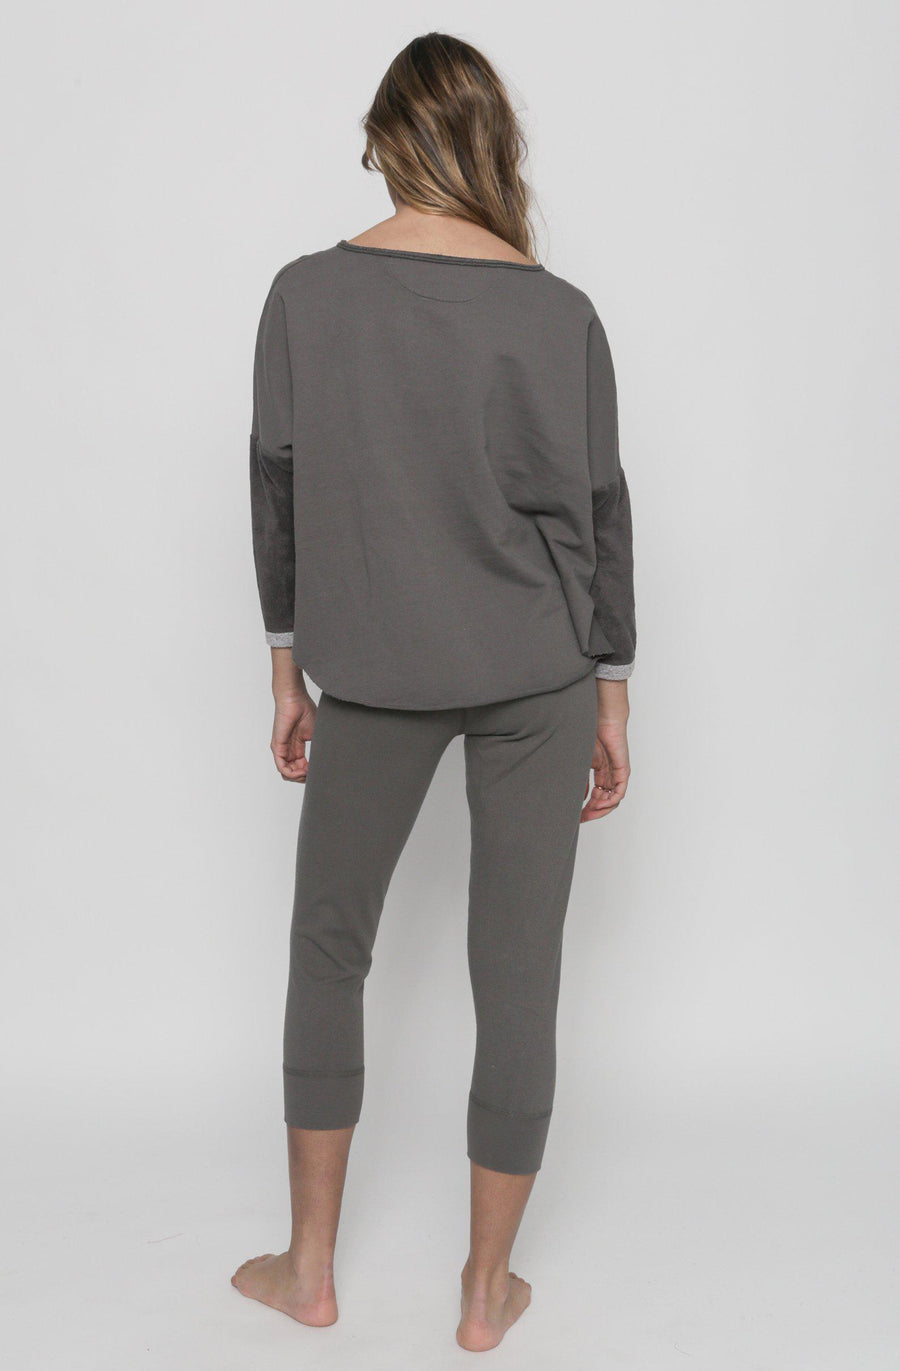 Patch Yoga Pullover - Ash